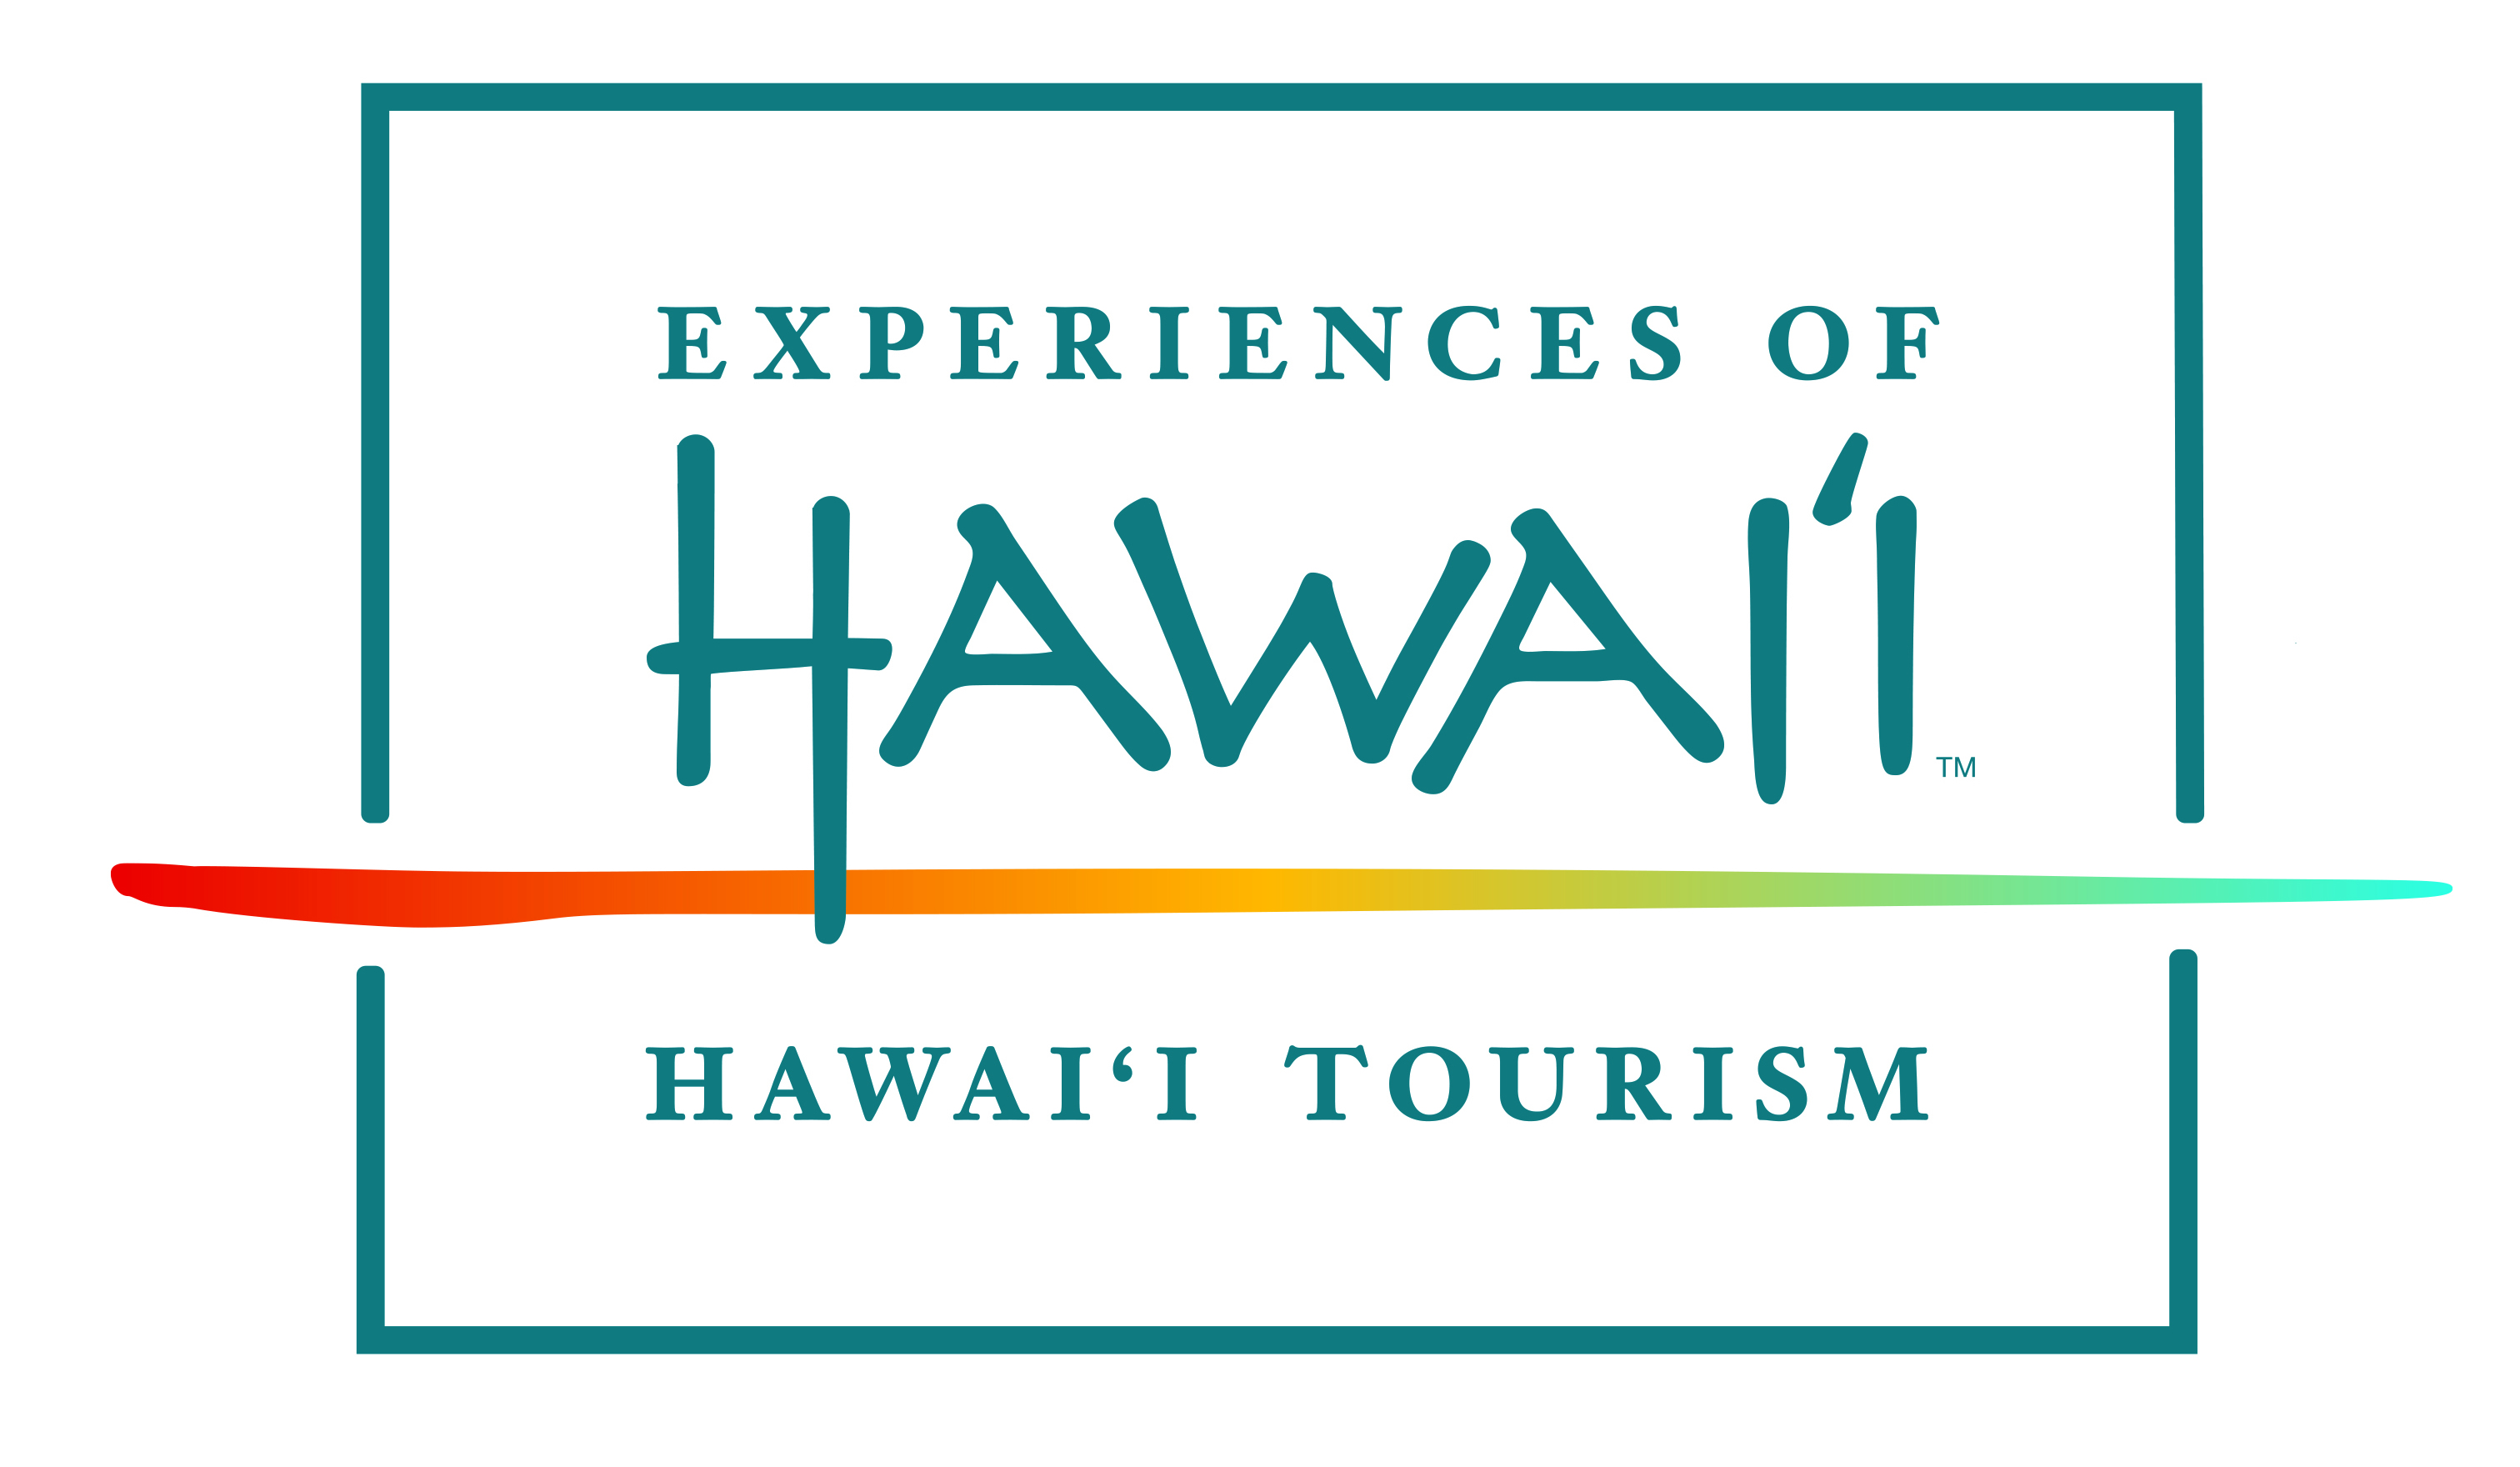 Experiences_of_Hawaii_HT_2019